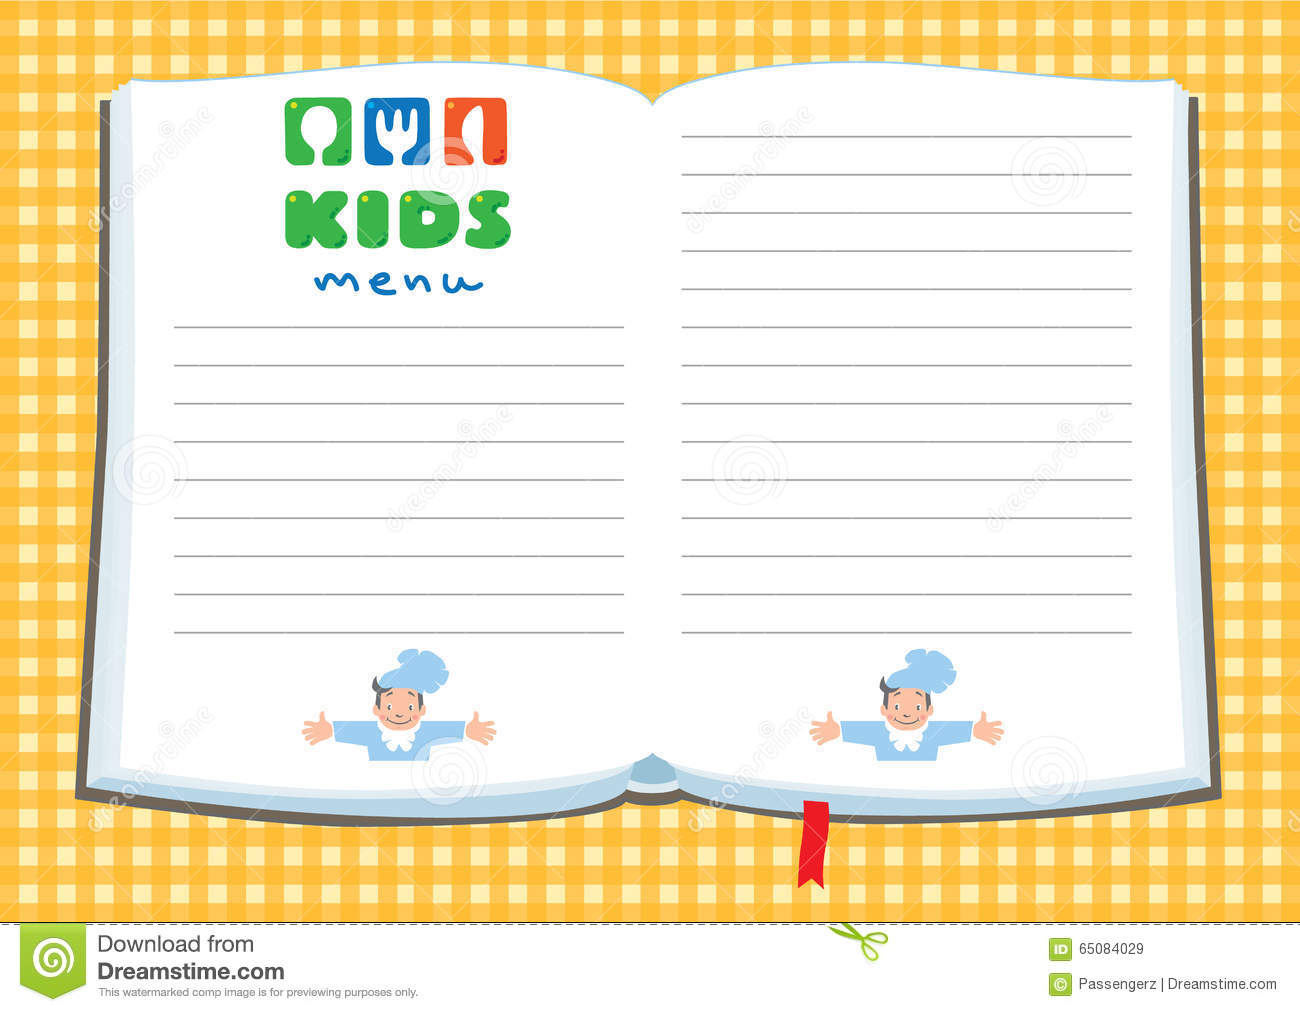 Design template background for kids menu stock vector for Free printable menu templates for kids